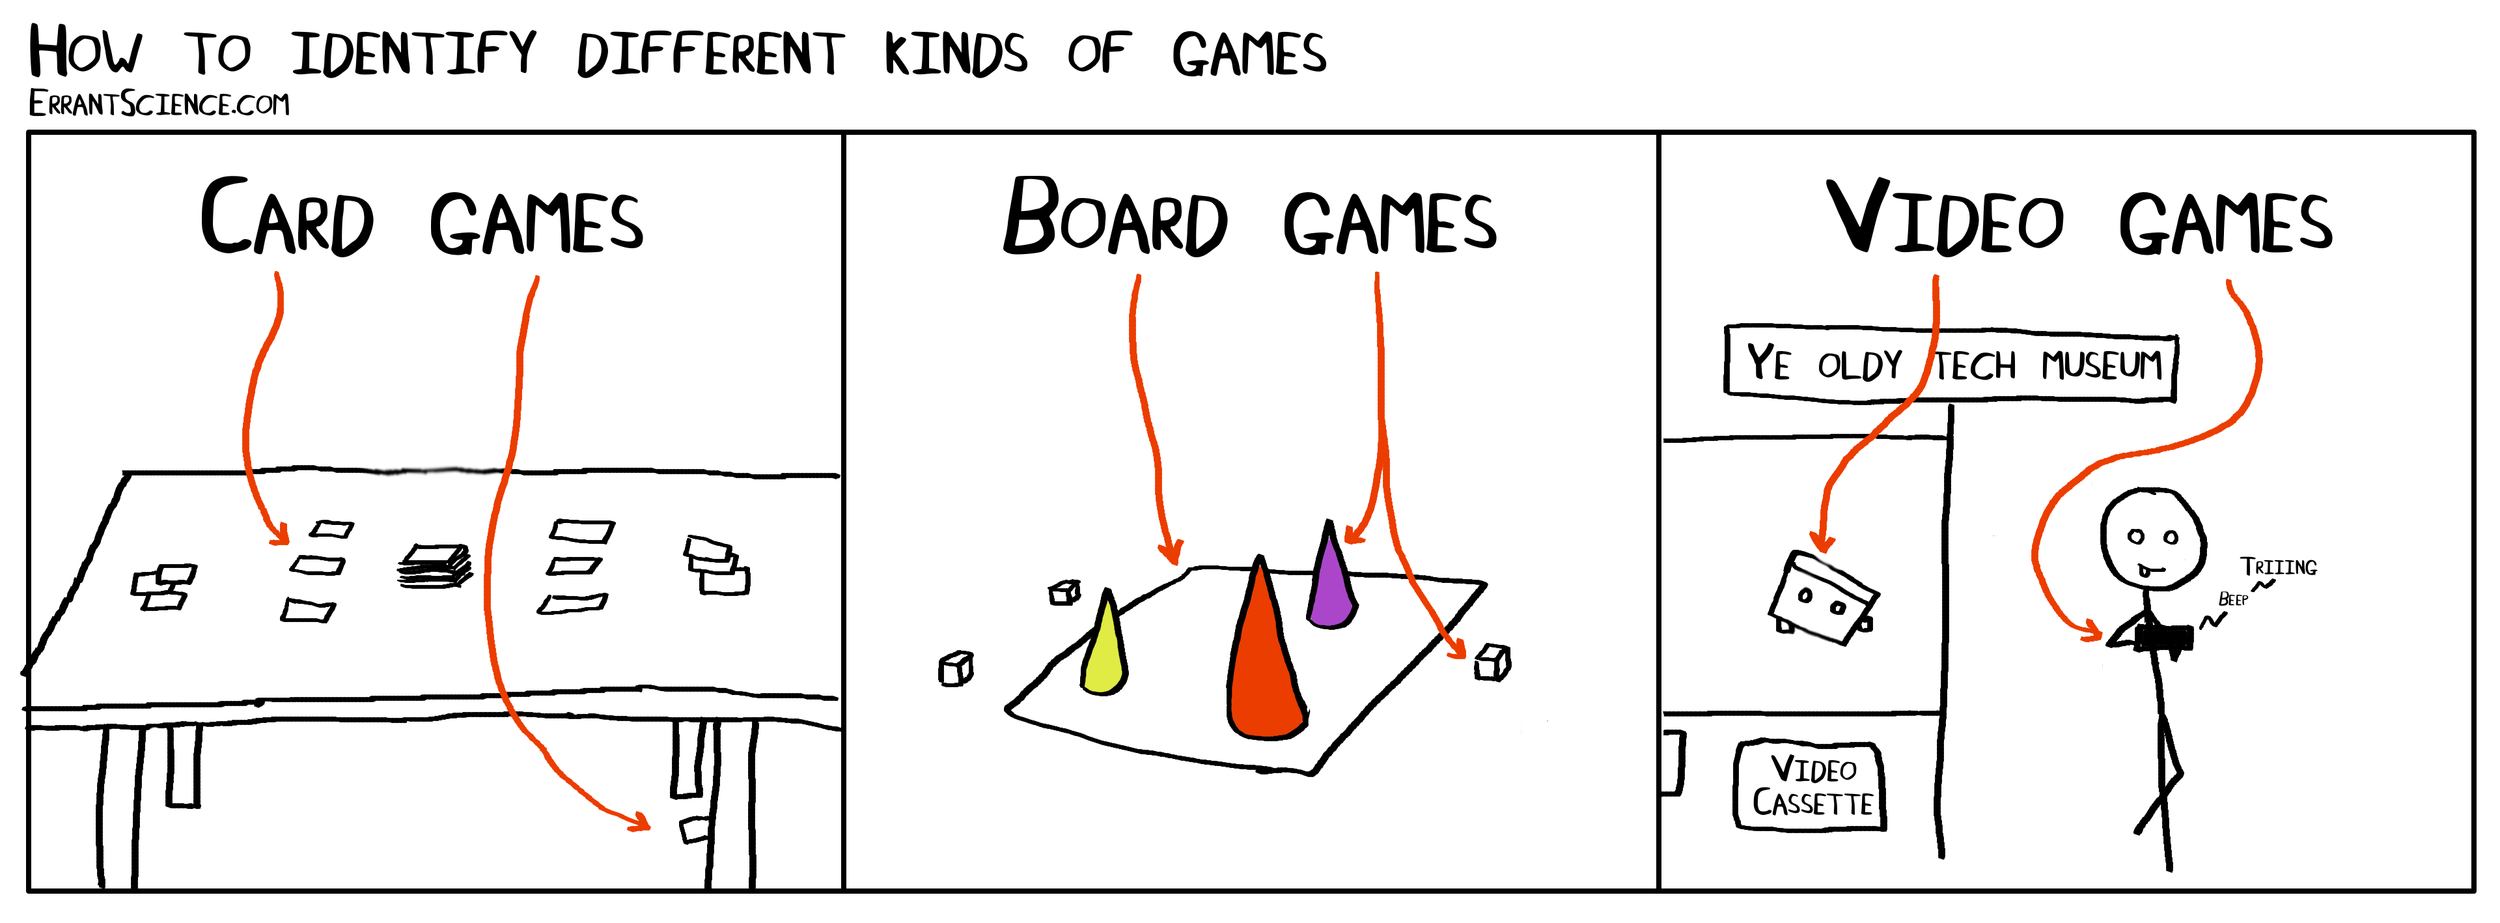 Types-of-games.png